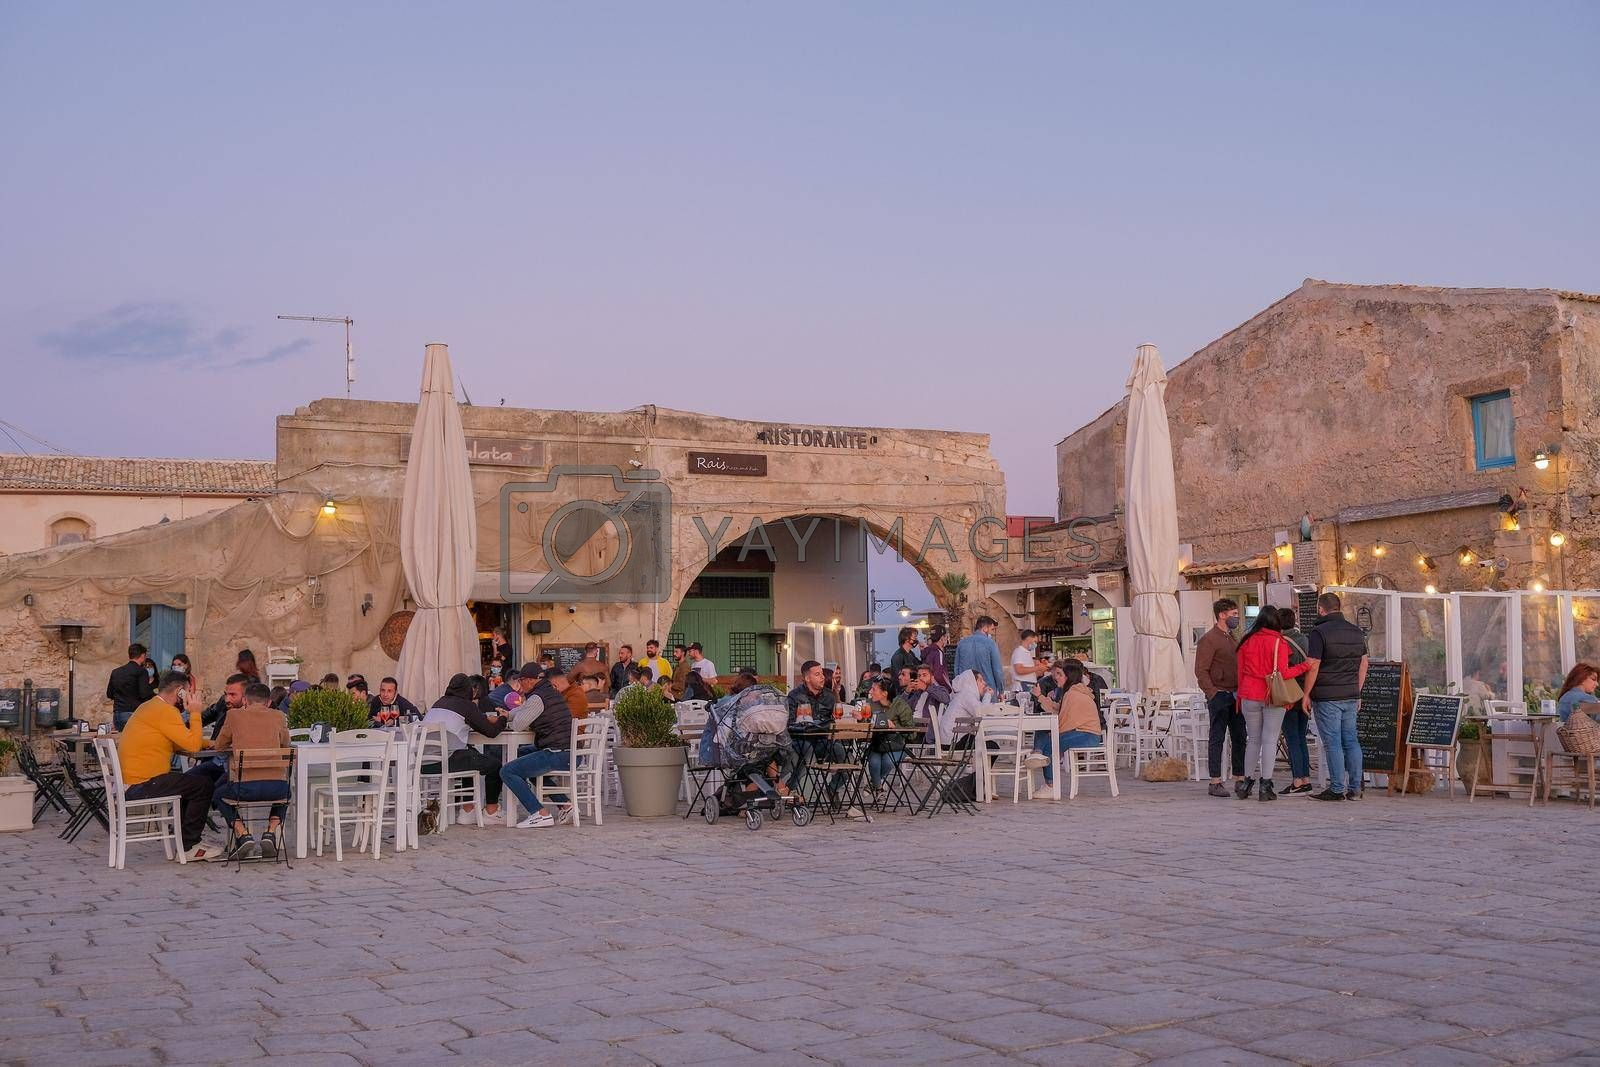 Syracuse Sicily October 2020, The picturesque village of Marzamemi, in the province of Syracuse, Sicily Italy